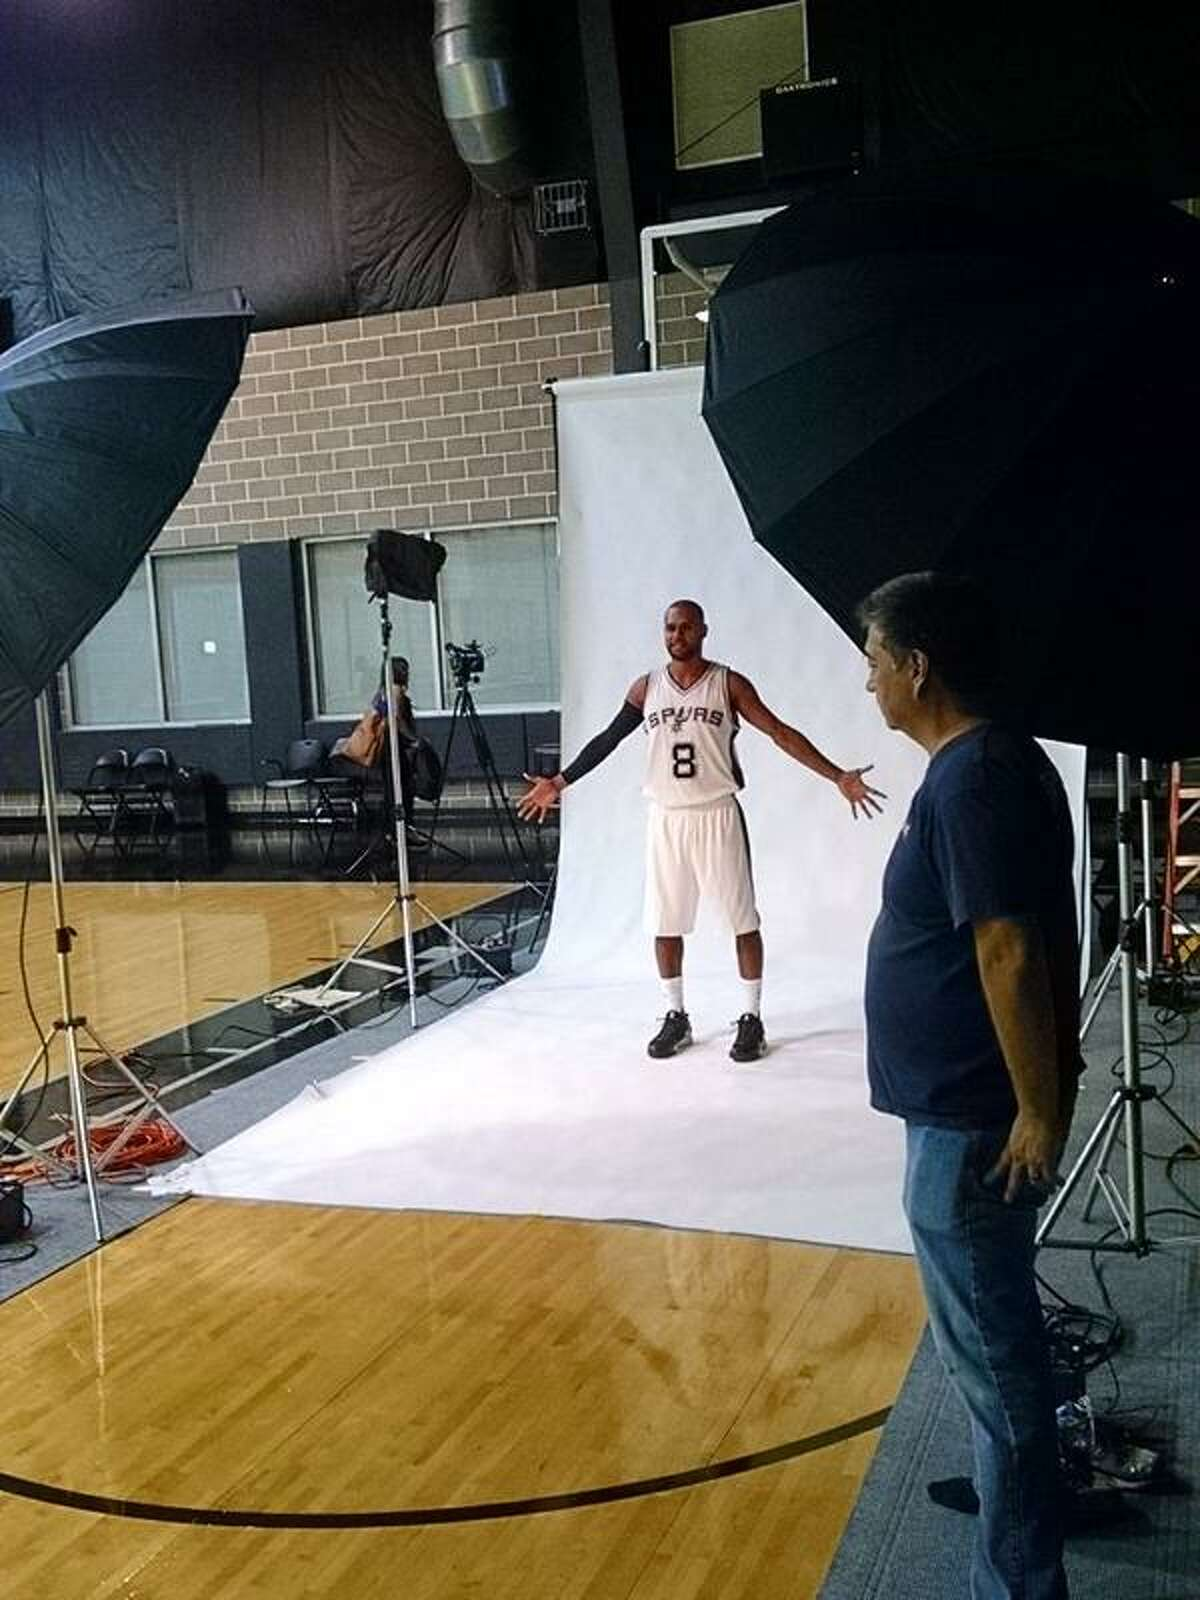 Patty Mills doing his shoot at Spurs Media Day.